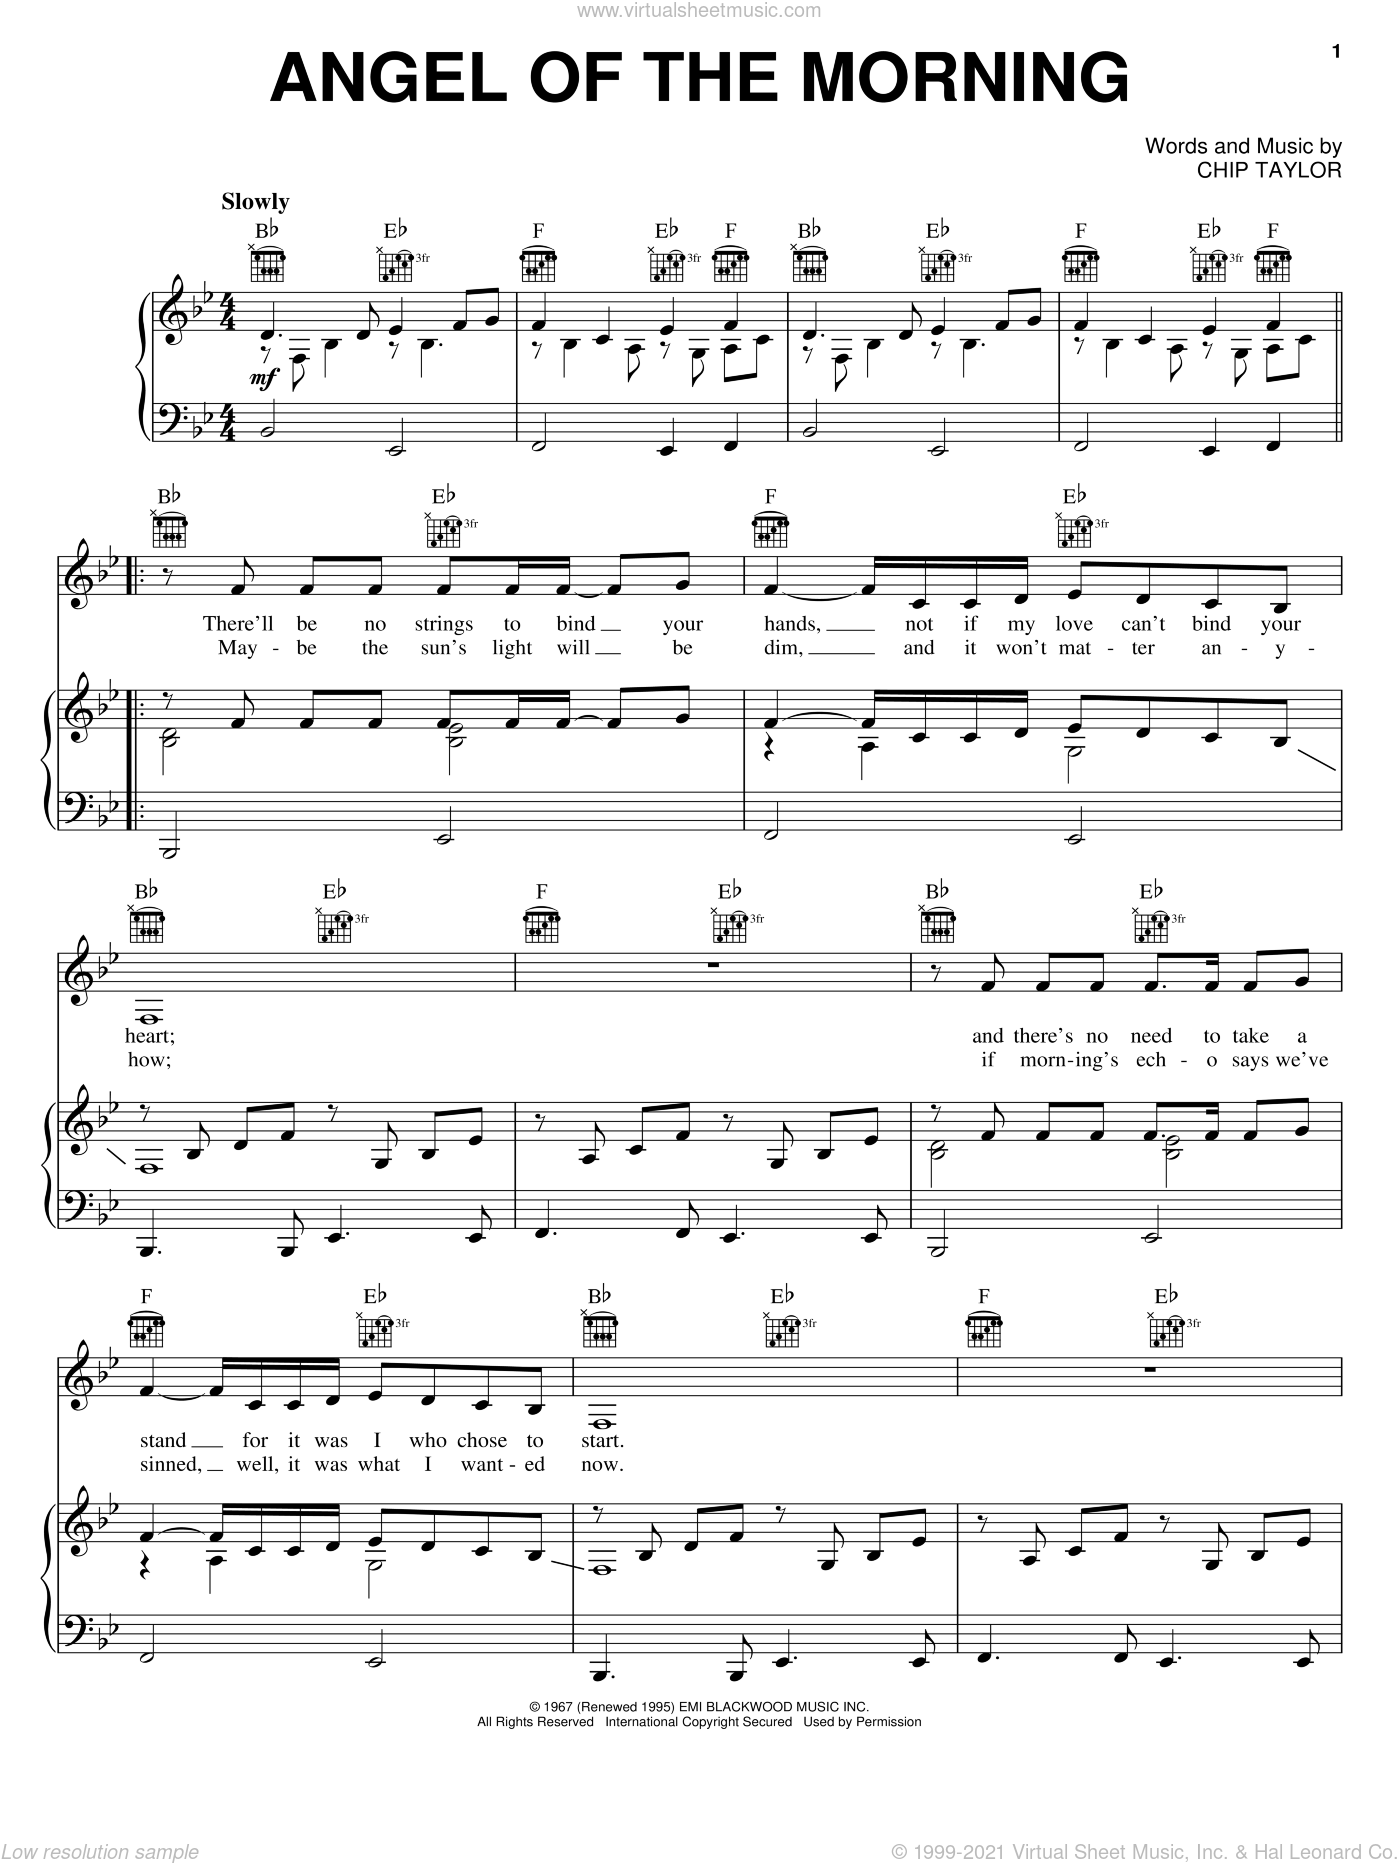 Angel Of The Morning sheet music for voice, piano or guitar by Chip Taylor